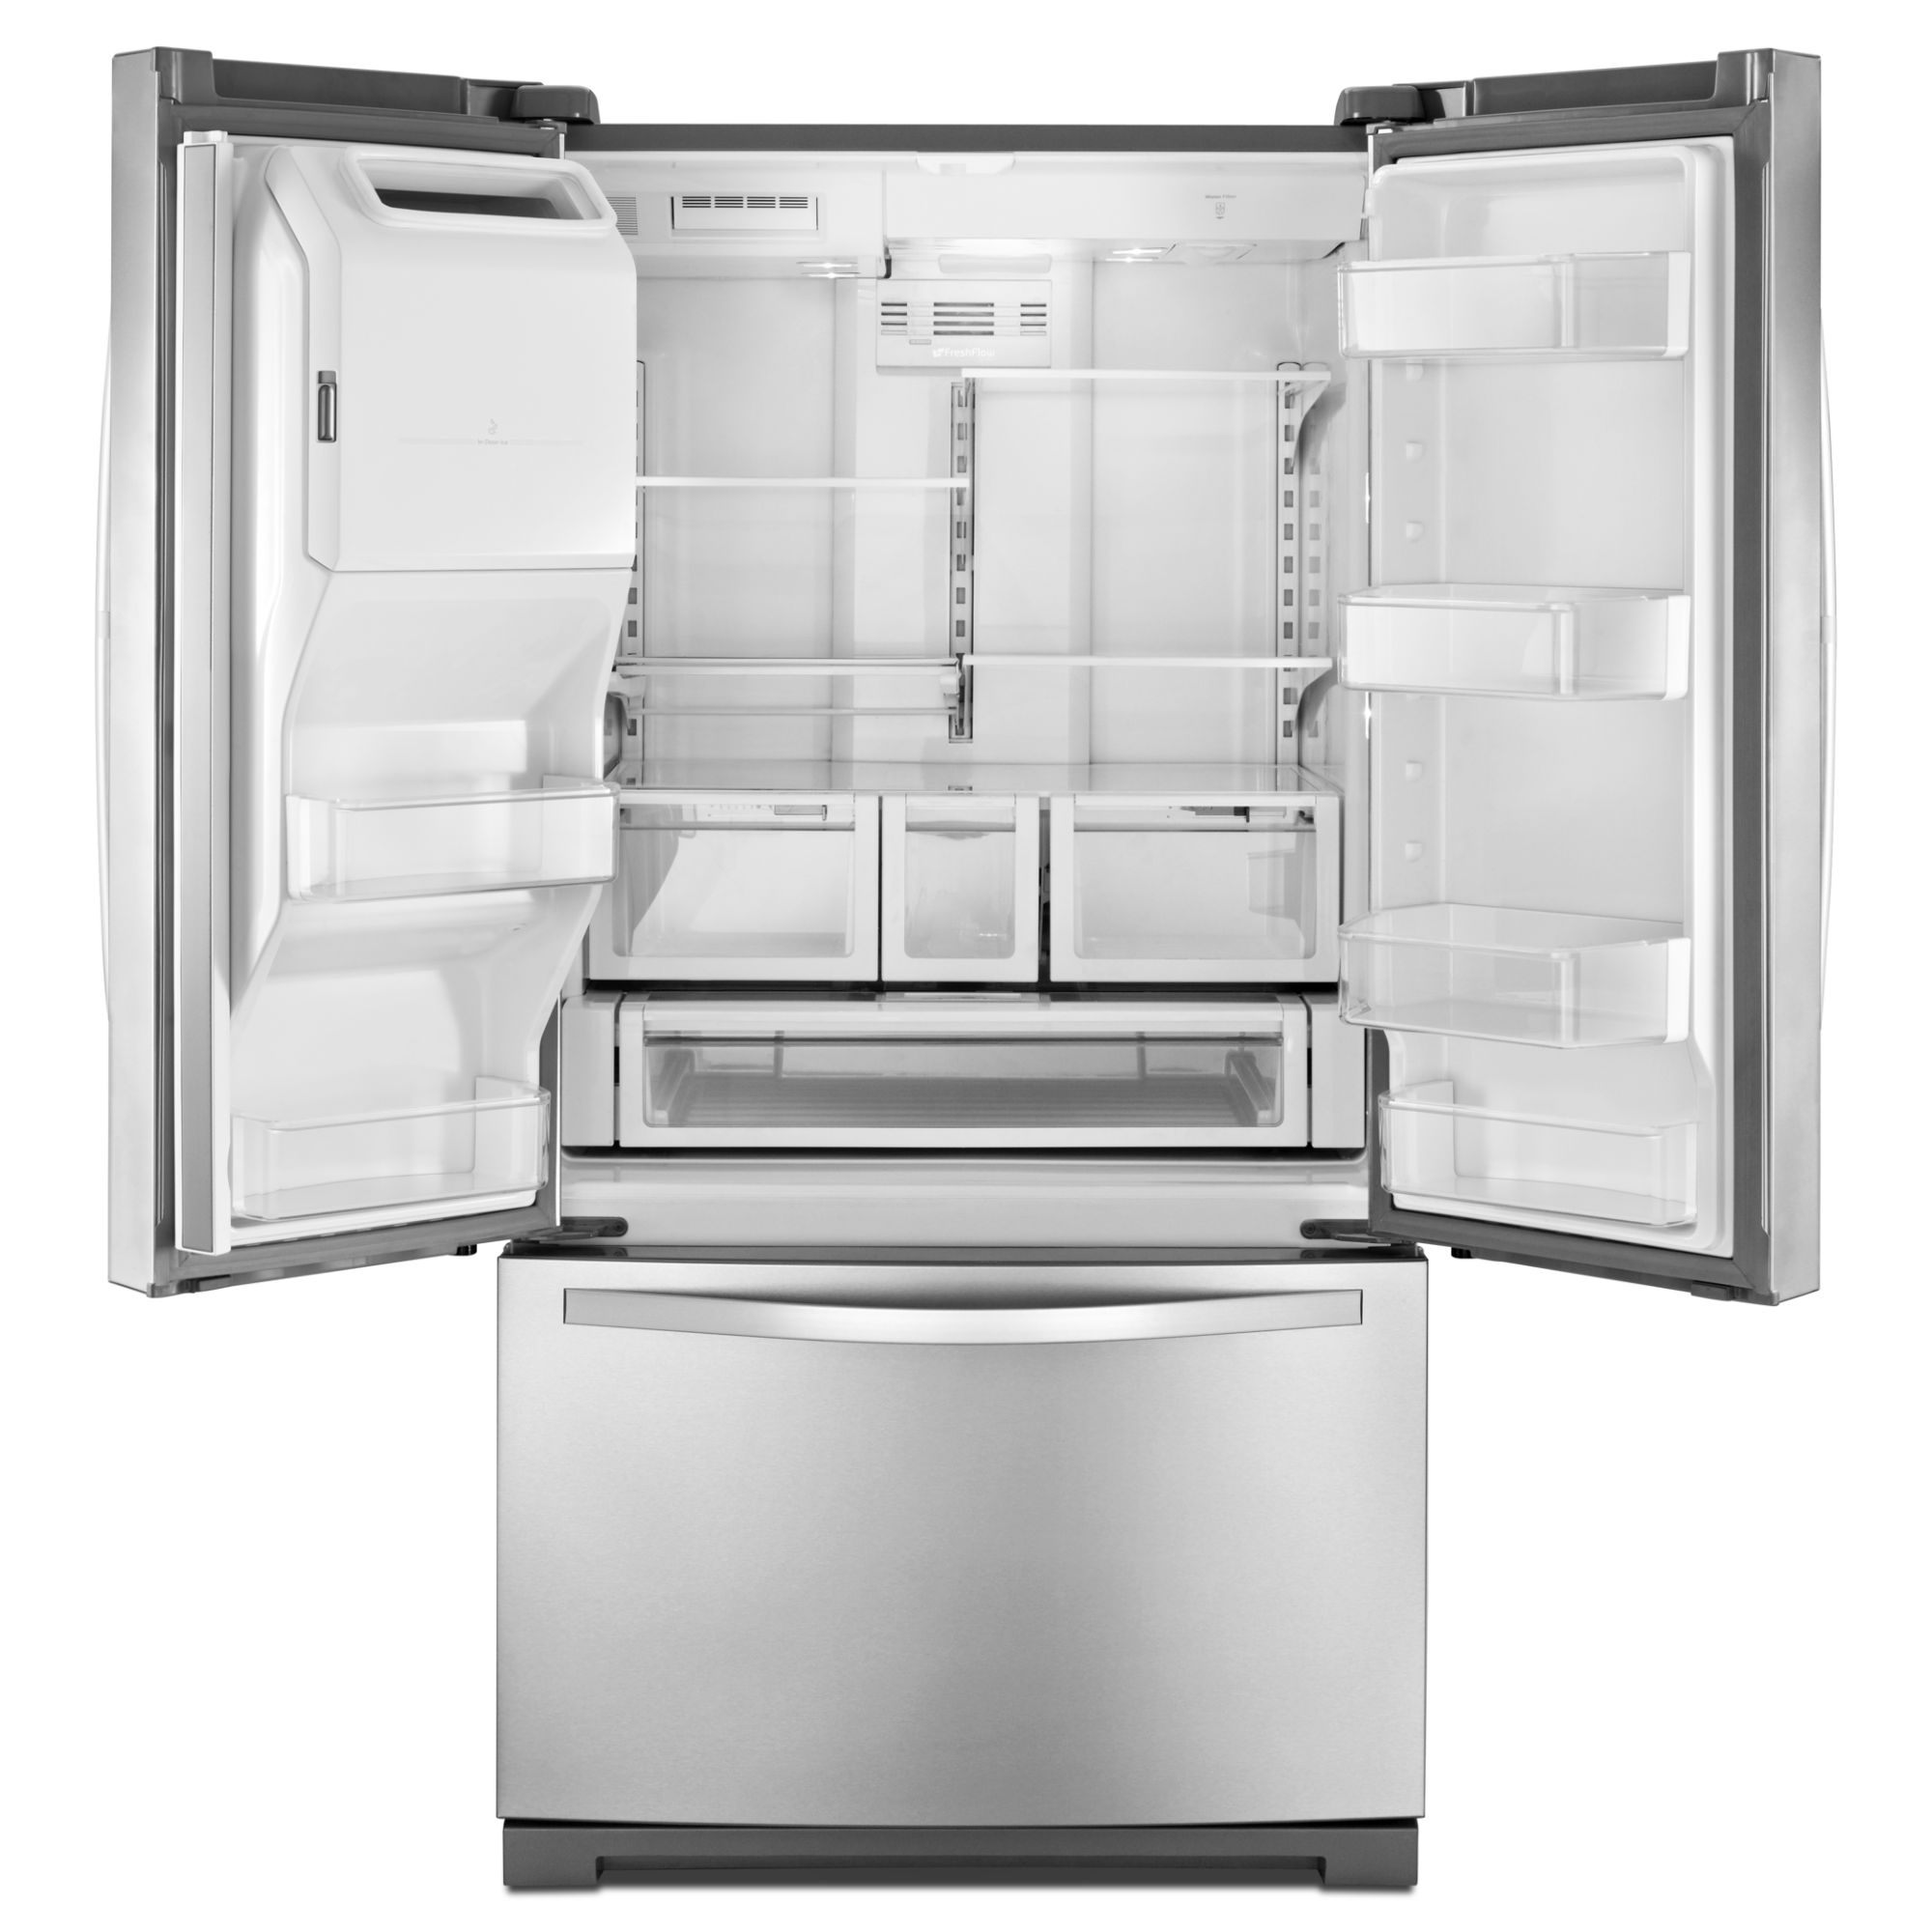 Whirlpool 26 cu. ft. French Door Refrigerator w/ MicroEdge Shelves - Satina Steel